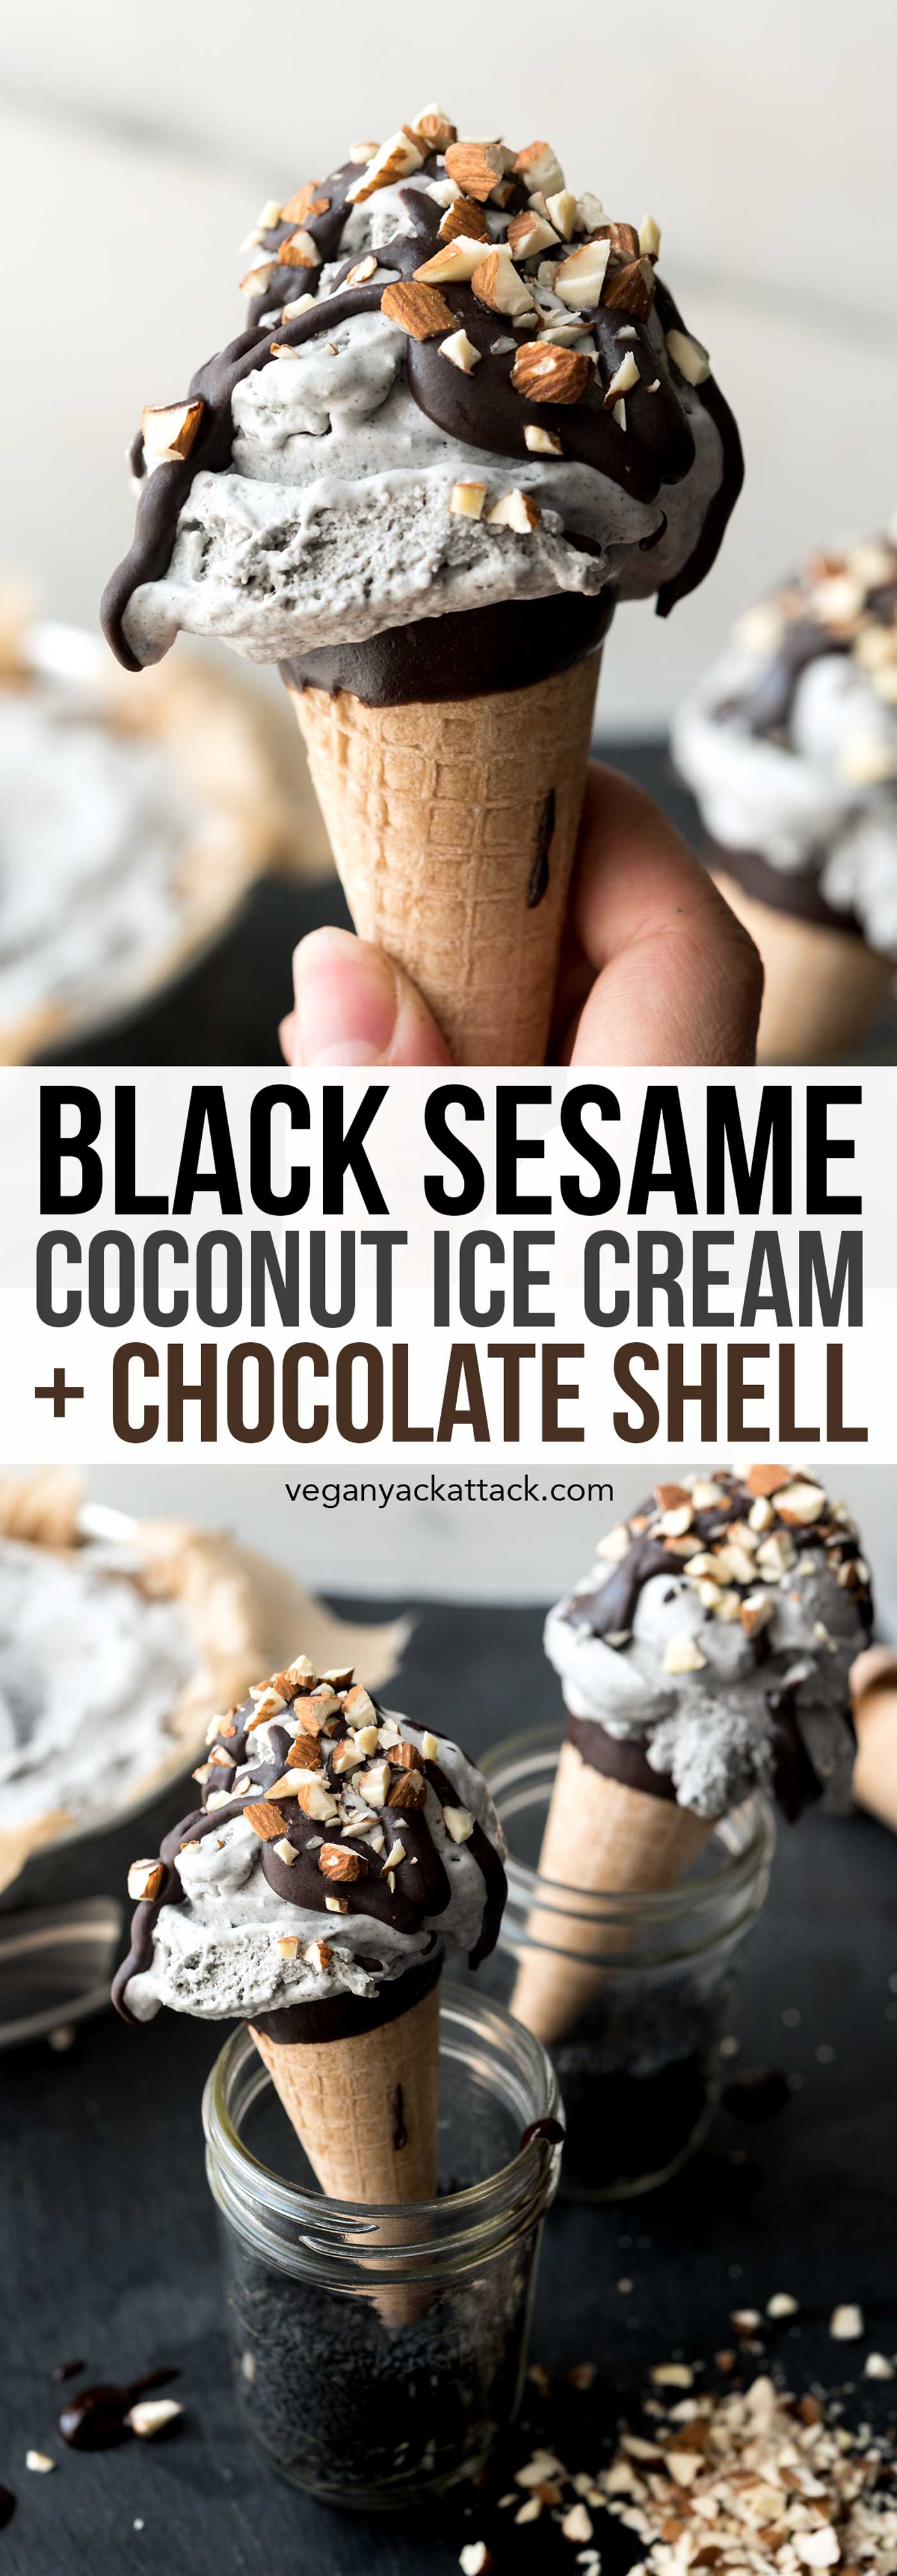 Black Sesame Coconut Ice Cream! Dairy-free, fluffy and oh-so-perfect for cooling off this summer. #vegan #glutenfree #soyfree #veganyackattack